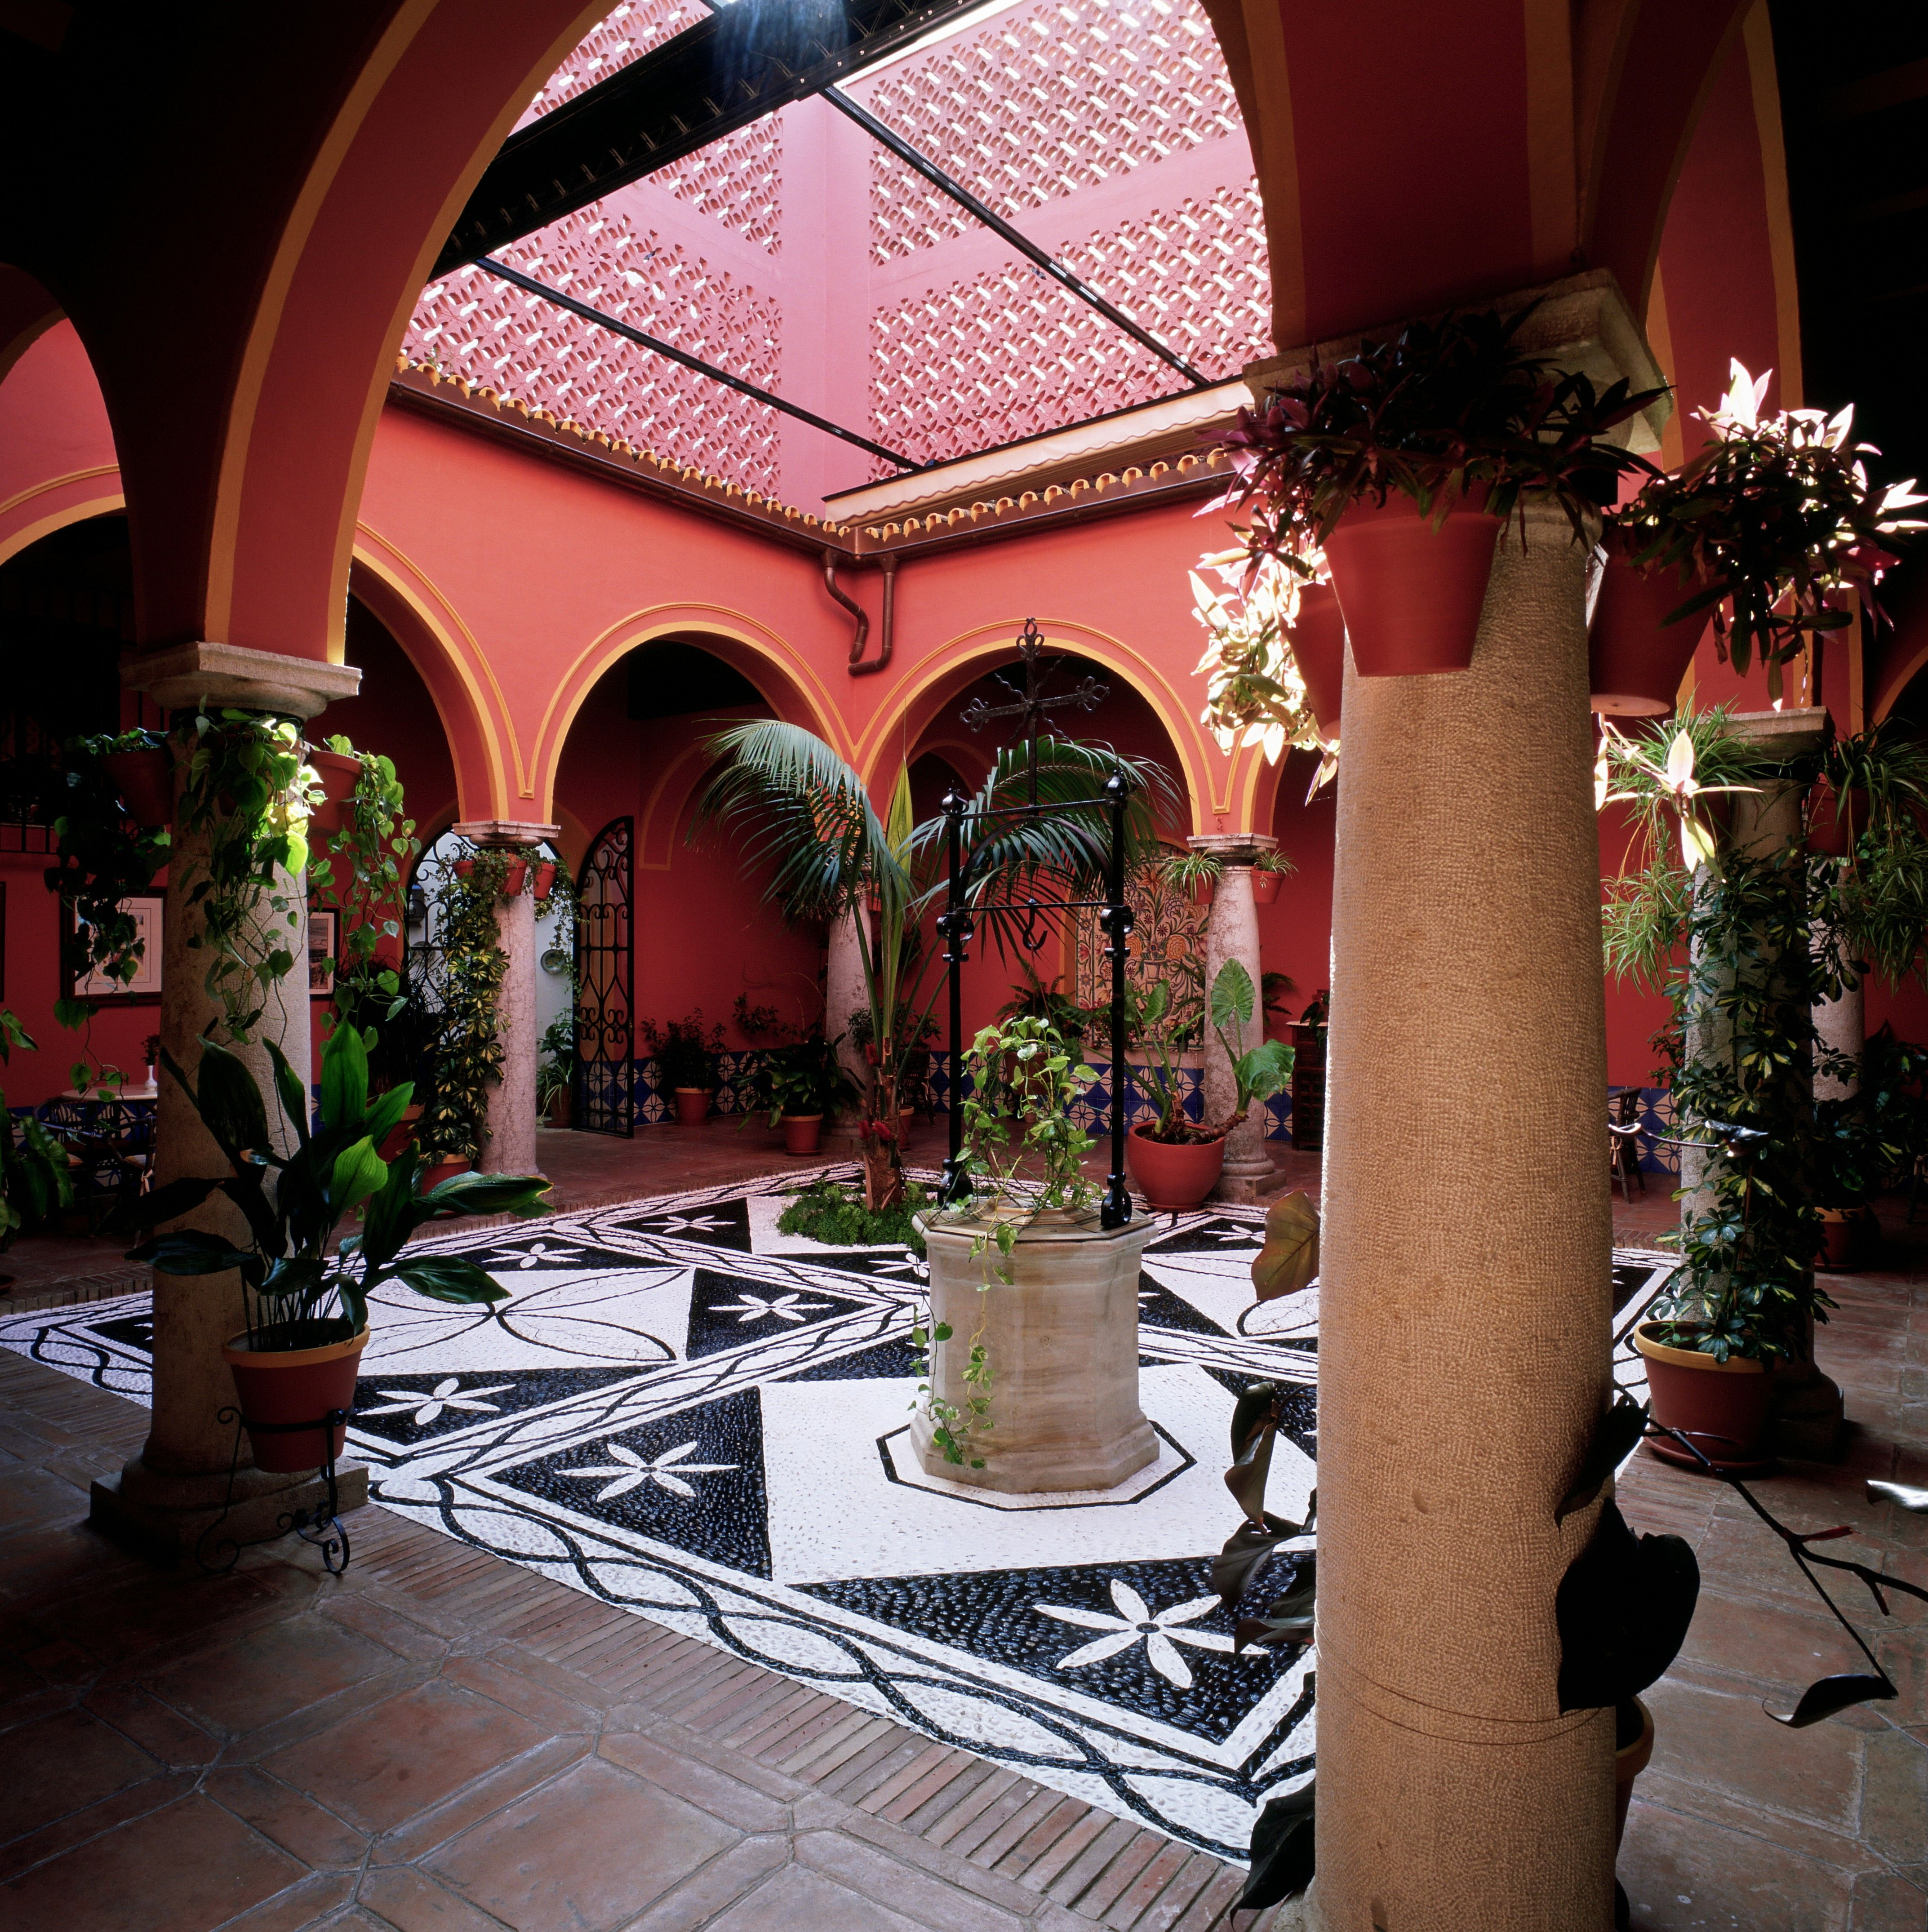 Pretty Courtyard With Beautiful Tile Work At Parador De Arcos De La Frontera In Andalusia Sapin House Styles Andalusia Cadiz